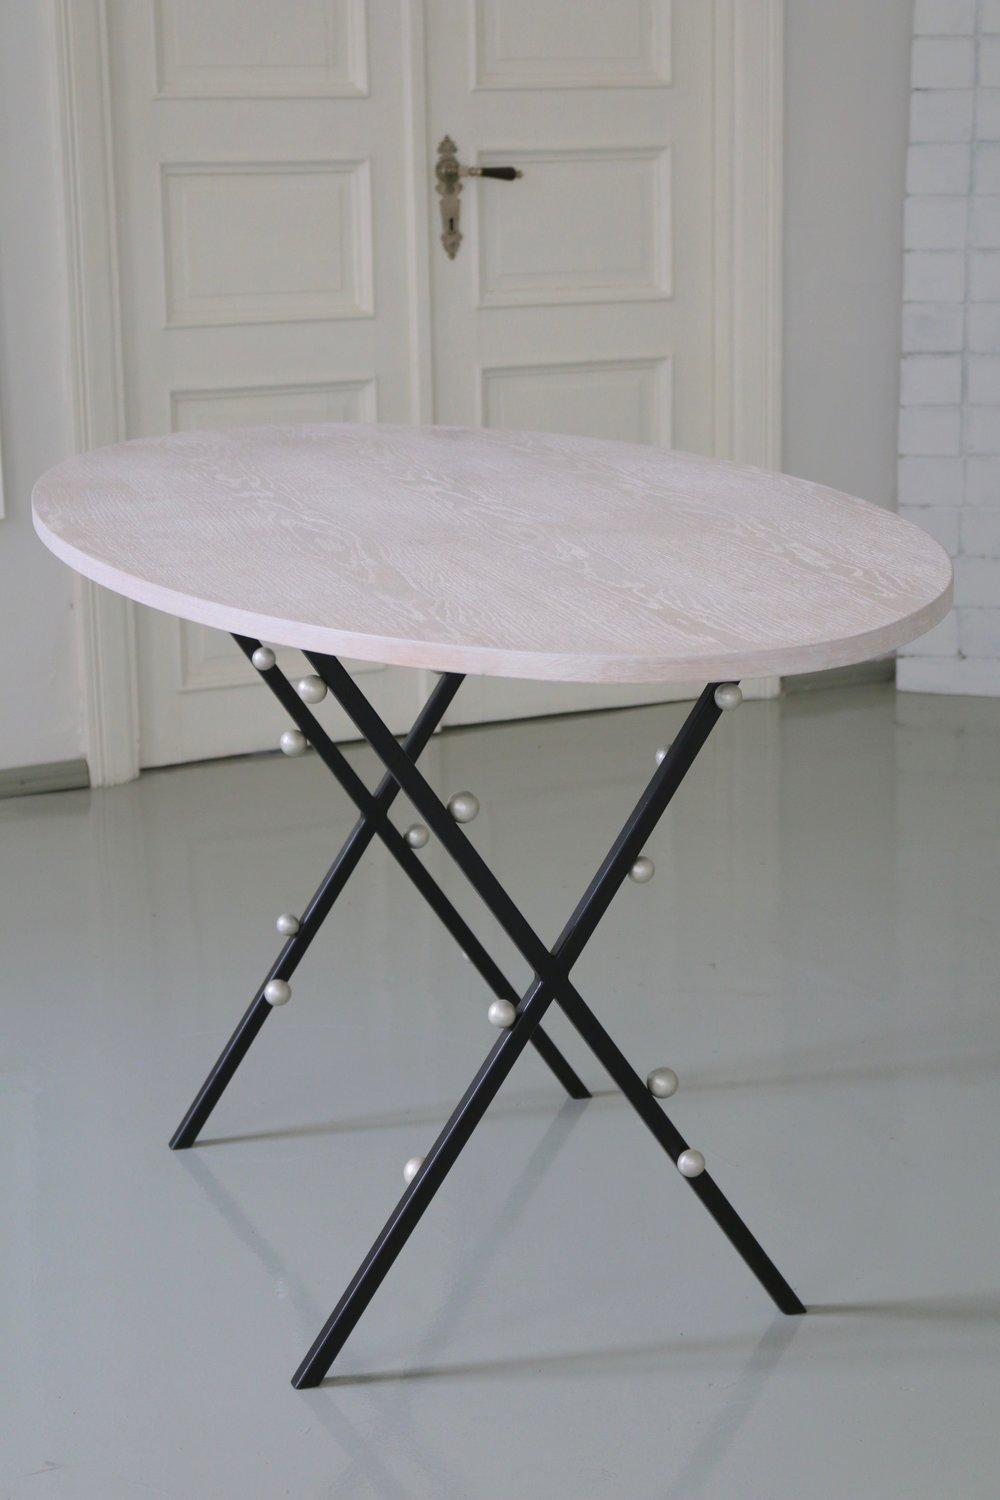 - XX PEARL TABLEEXPERIMENTAL COLLECTIONcross steel legs with hand-painted cream pearlsoval, cream white oak topdimensions: 170 x 80 cm, h 75 cmEUR 500 (price for a prototype item)